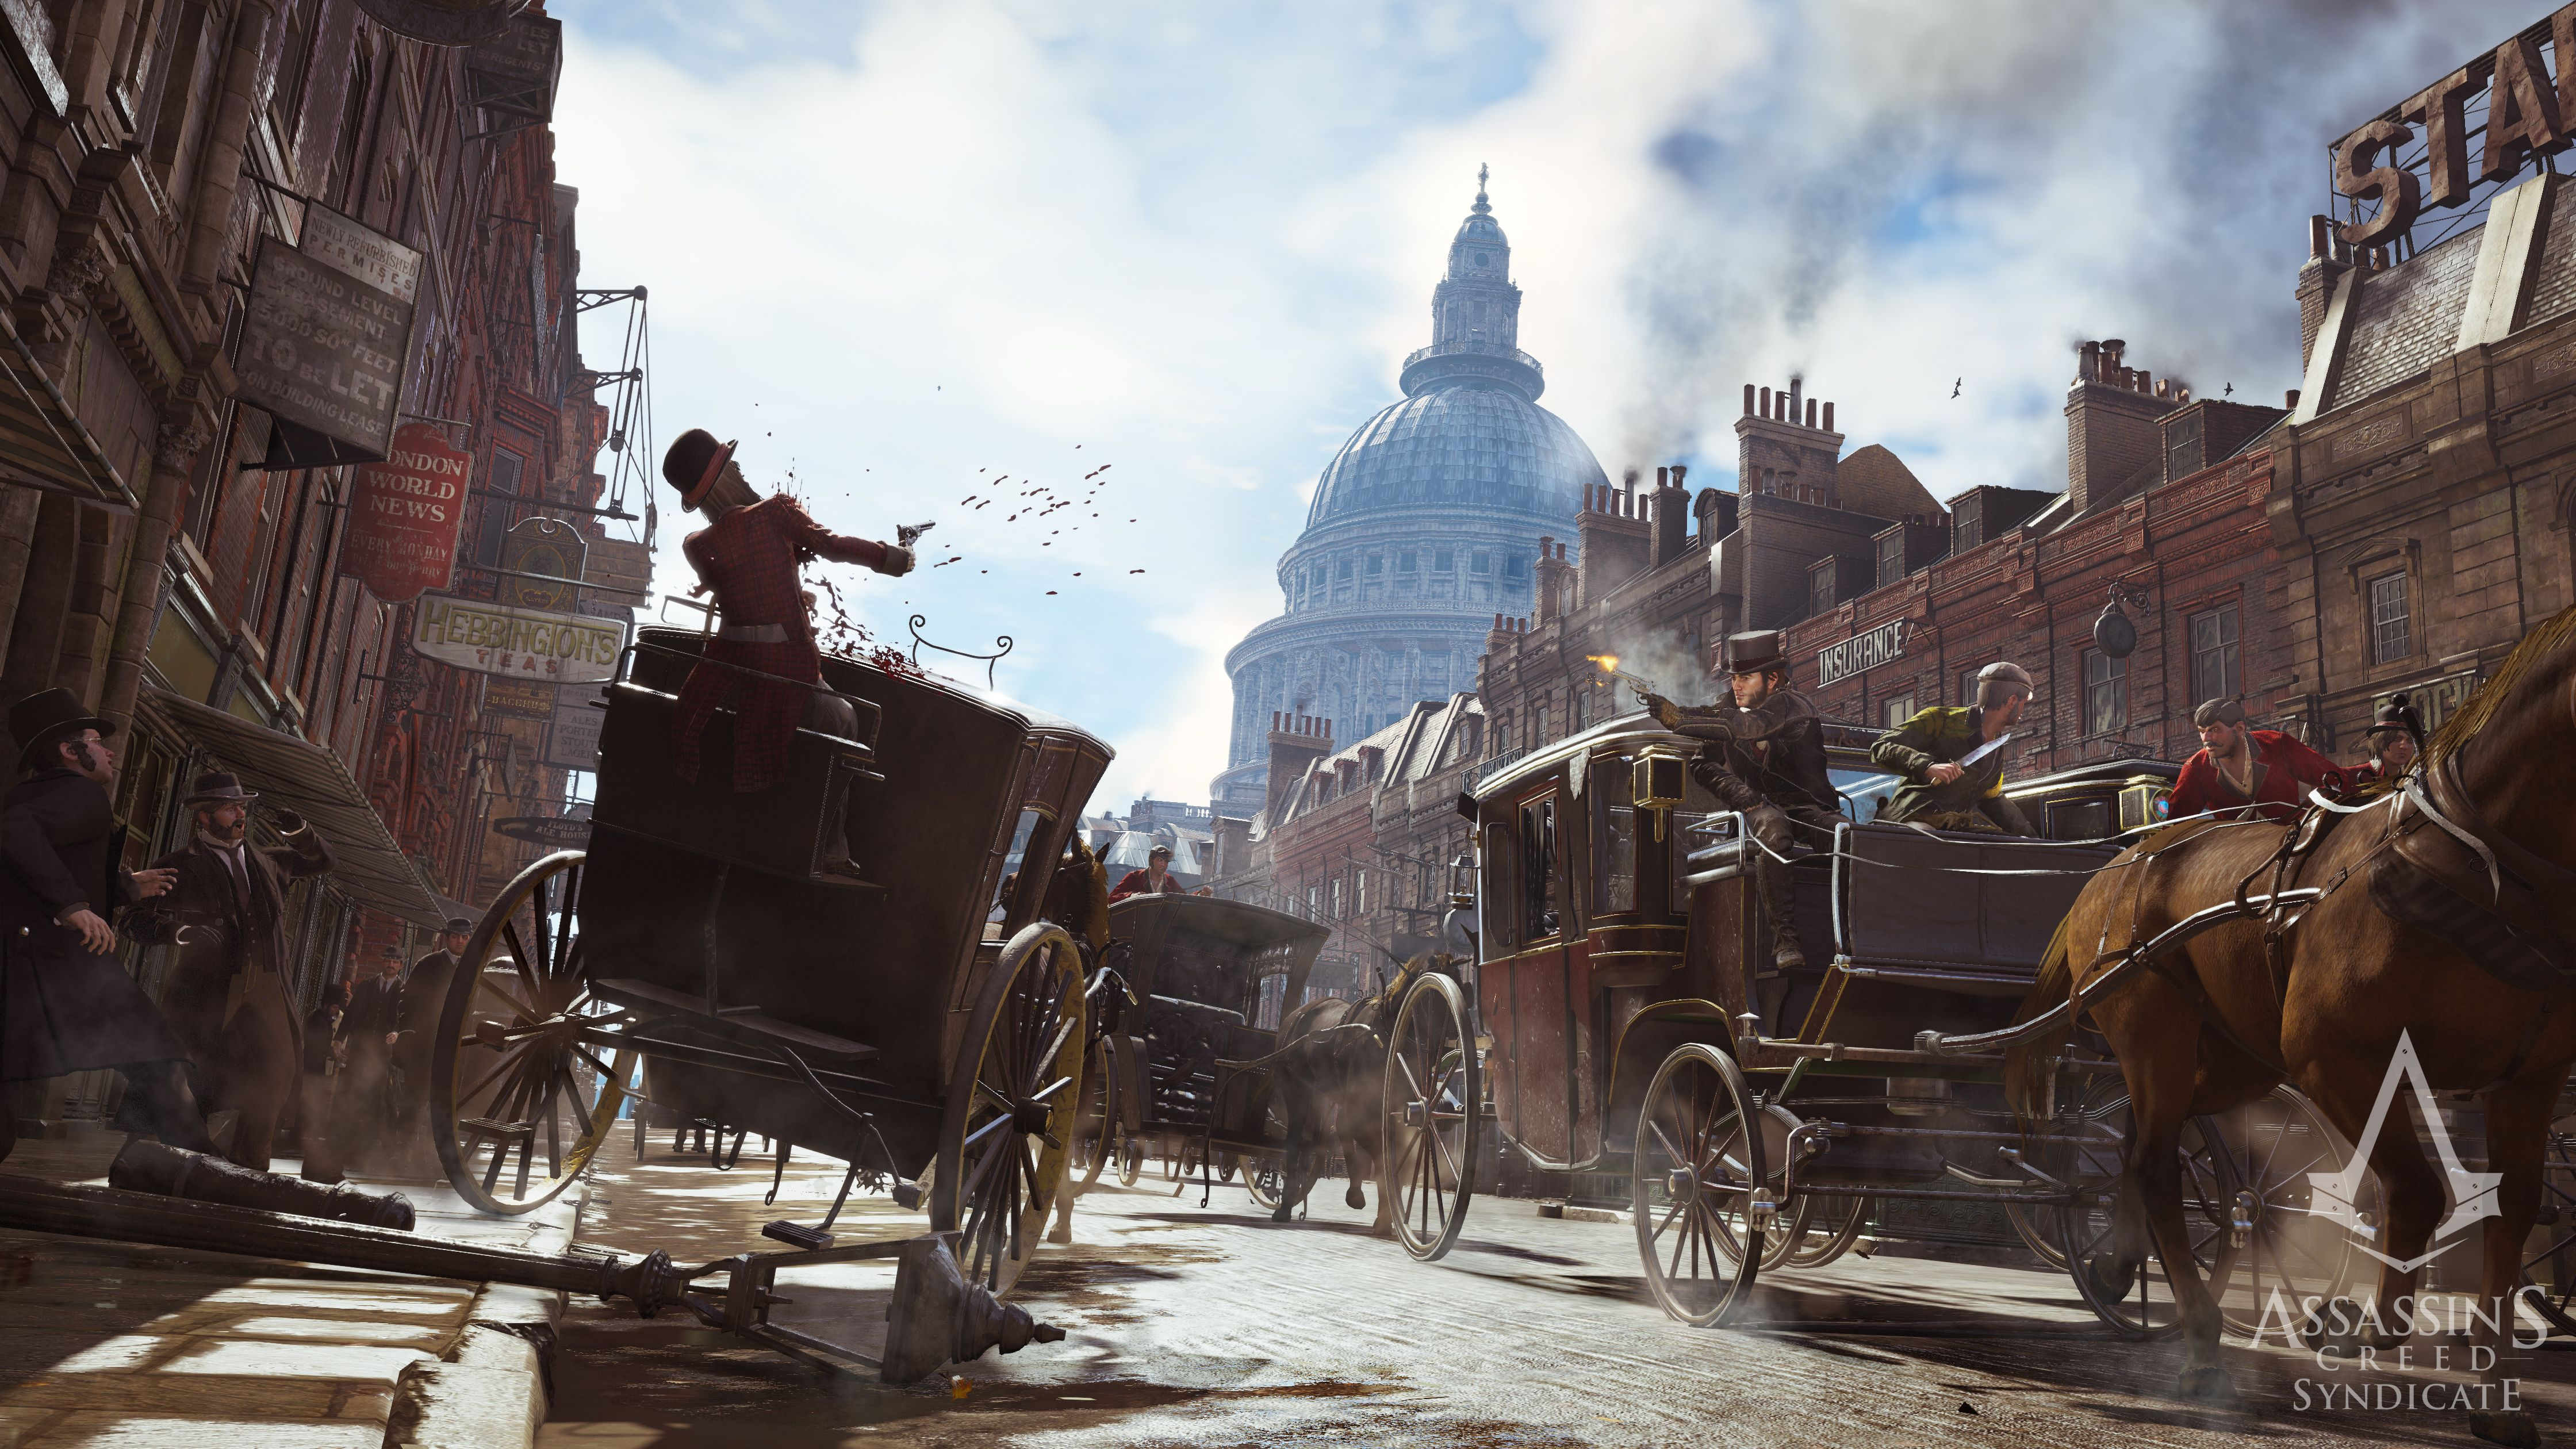 Assassins Creed Syndicate Pc Game Free Download Rydasworld